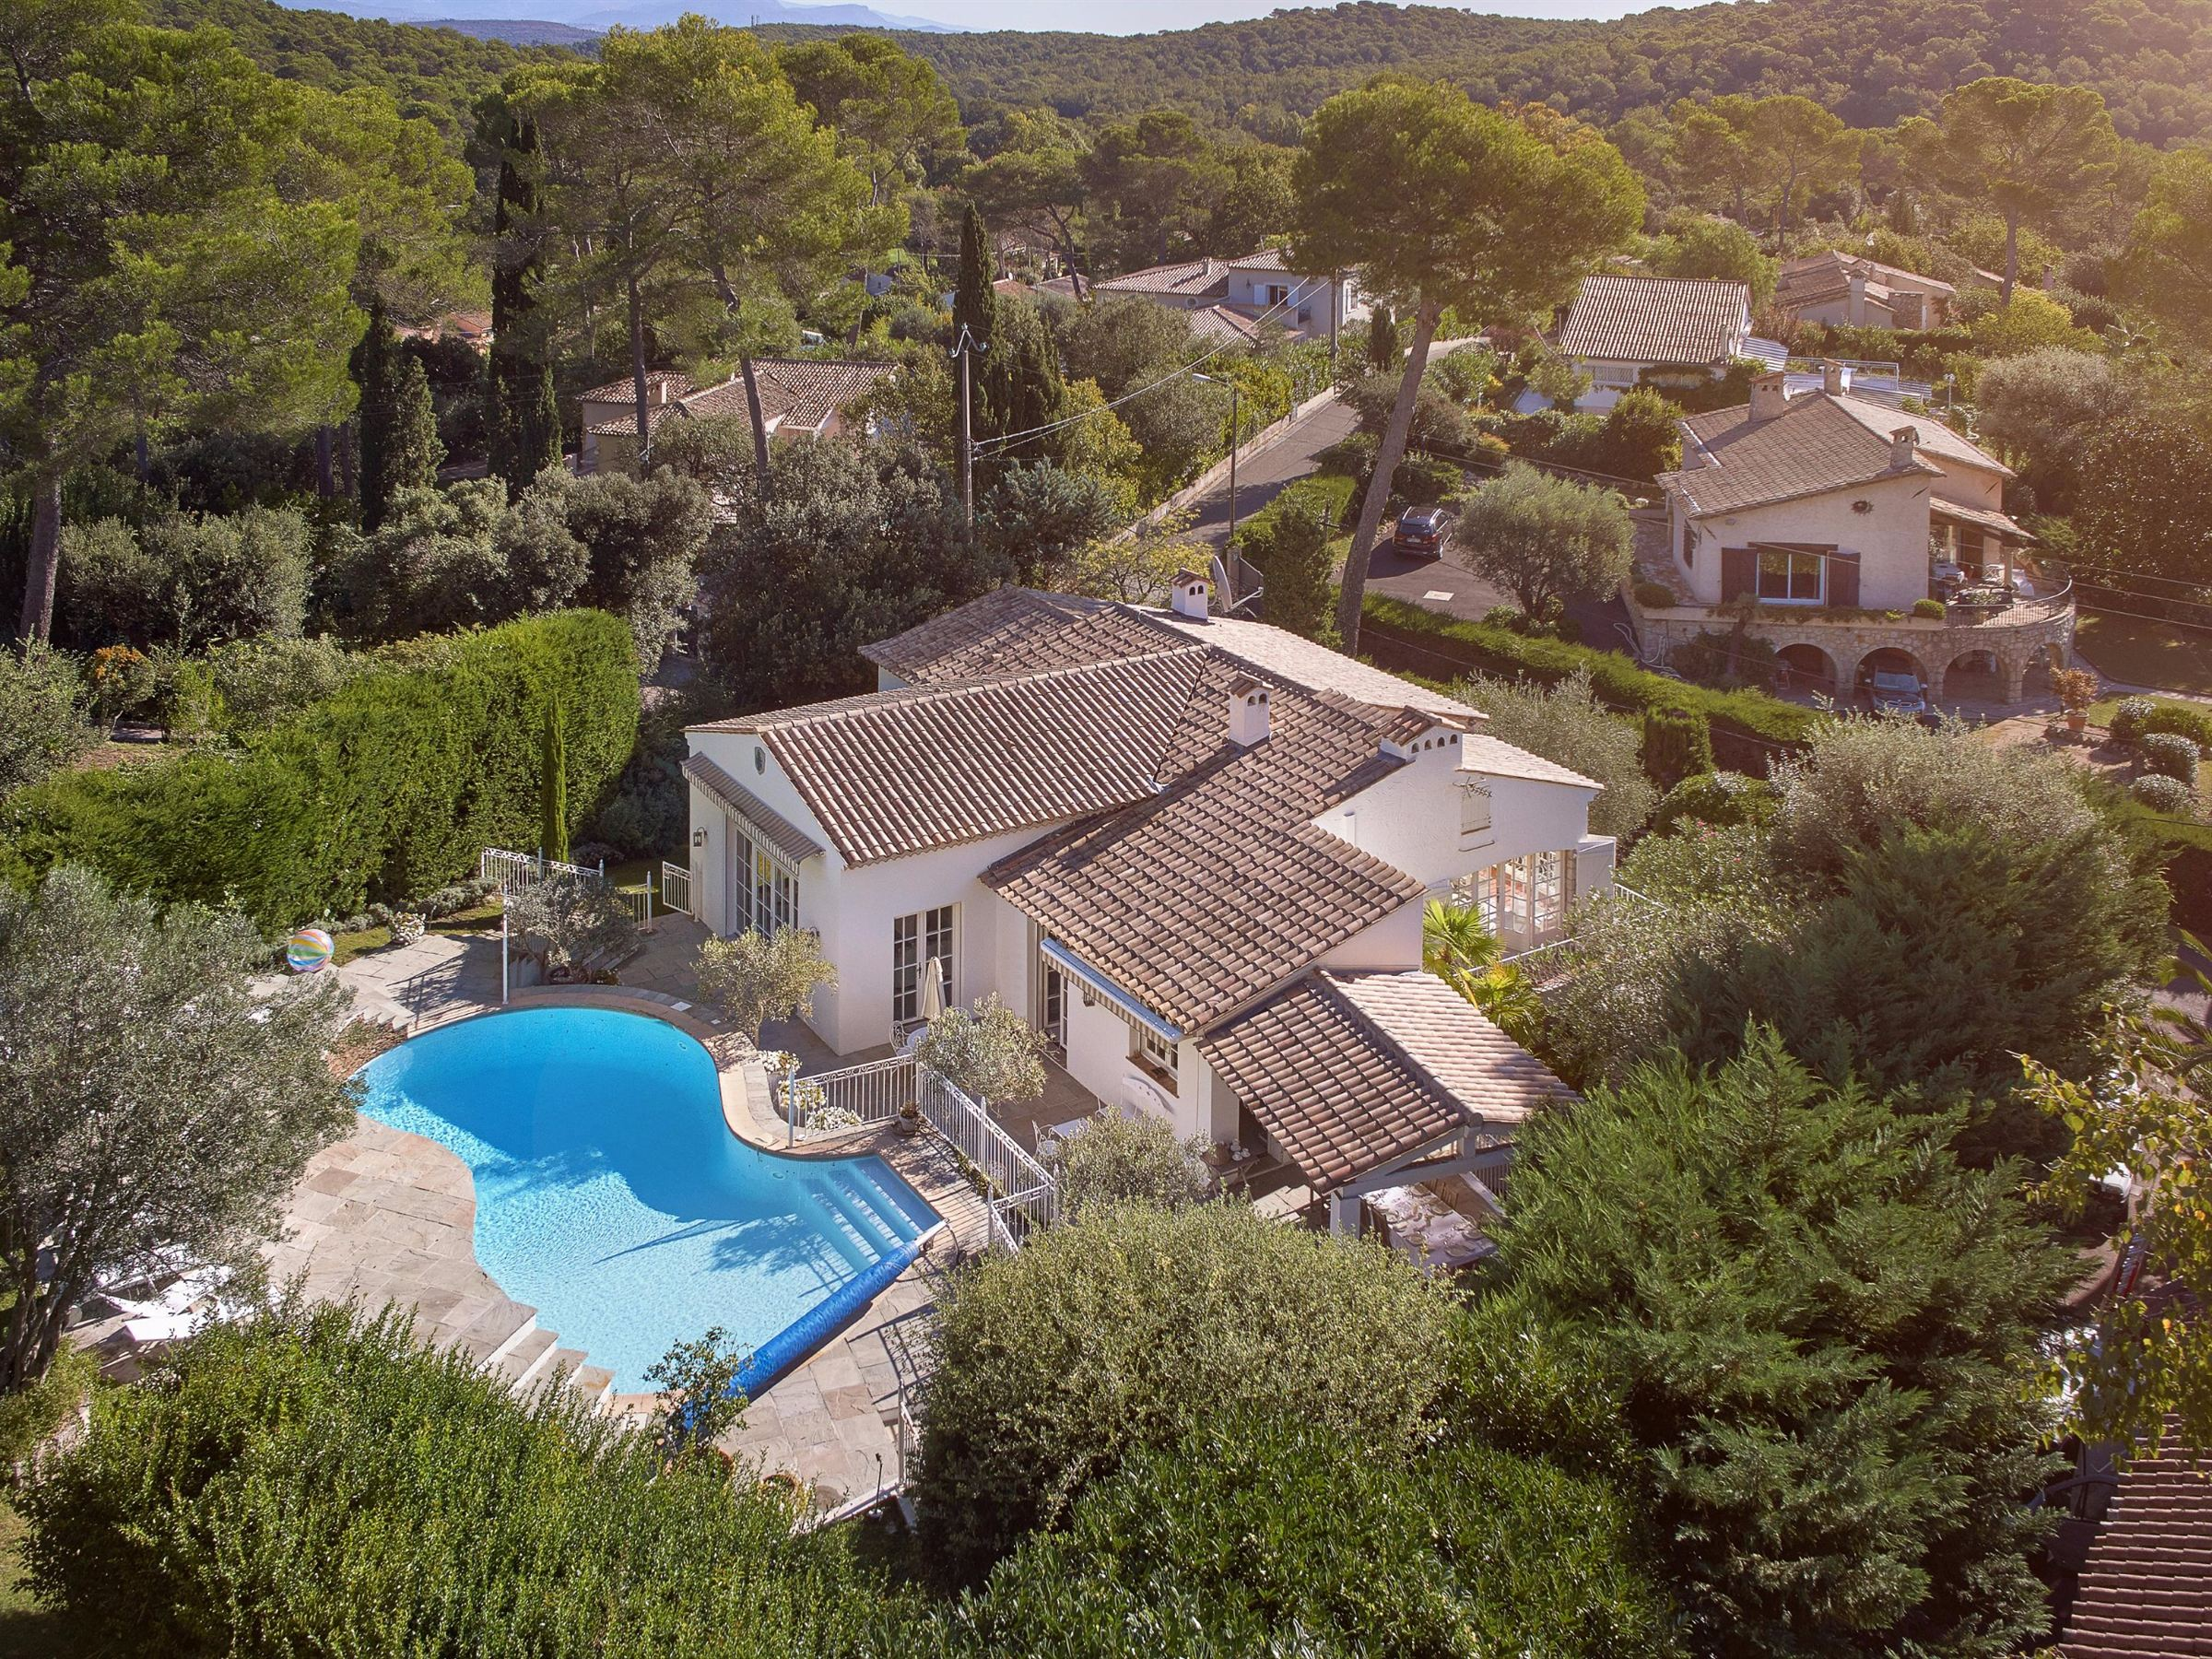 Single Family Home for Sale at beautiful provençal villa in a private domain Mougins, Provence-Alpes-Cote D'Azur, 06250 France